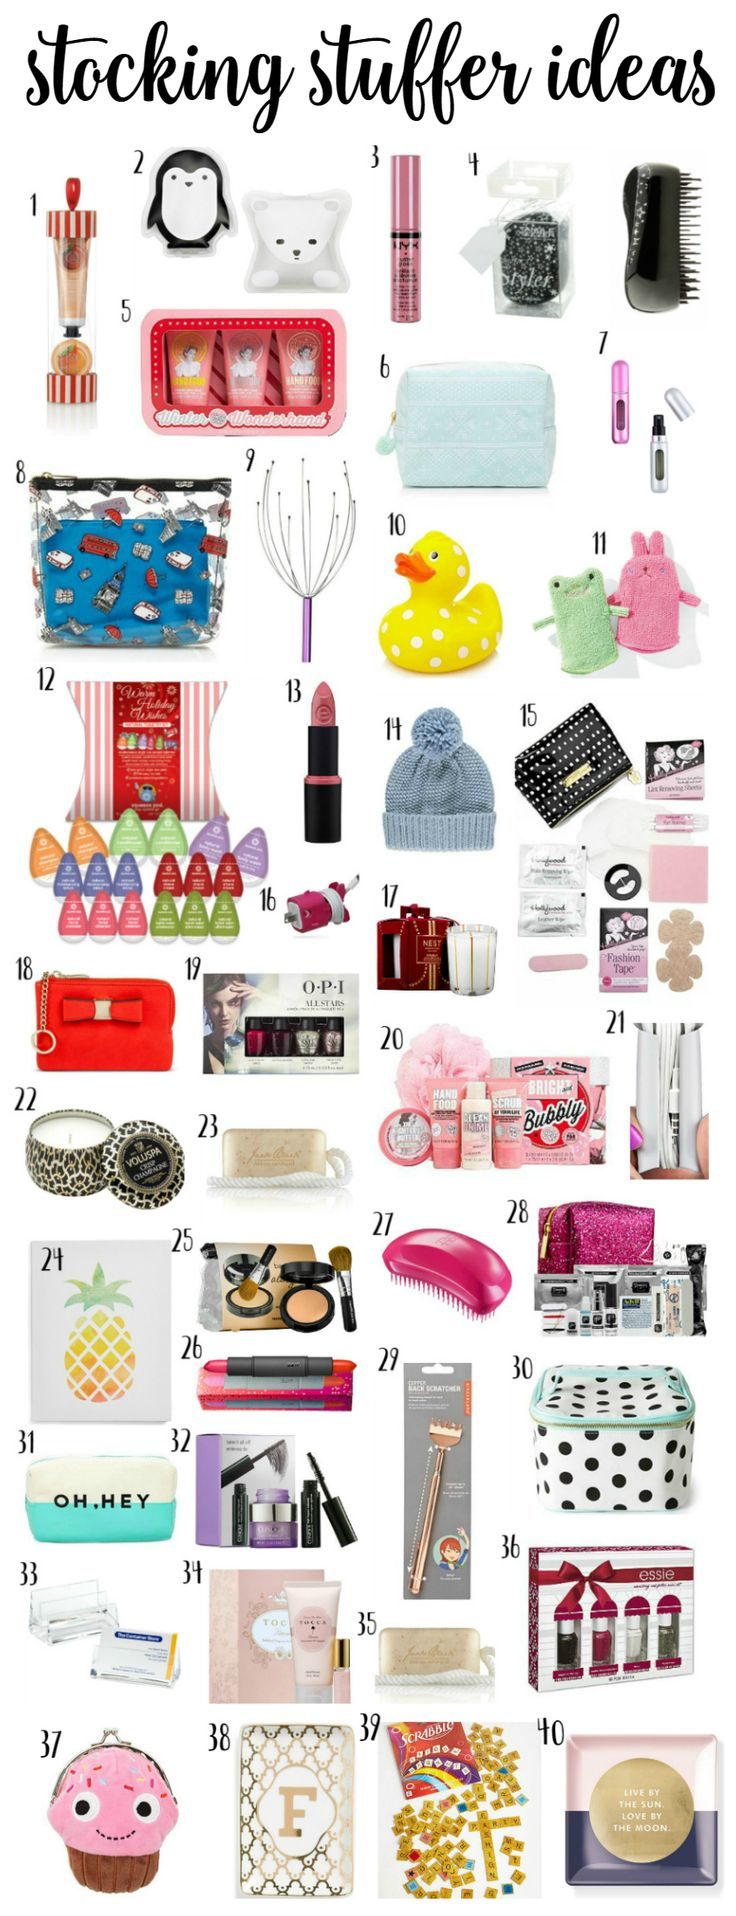 The best Christmas stocking stuffer ideas for women! Click through to see the ultimate christmas gift guide for women feature the best stocking stuffers and stocking fillers by blogger Ashley Brooke Nicholas via @ashleynicholas